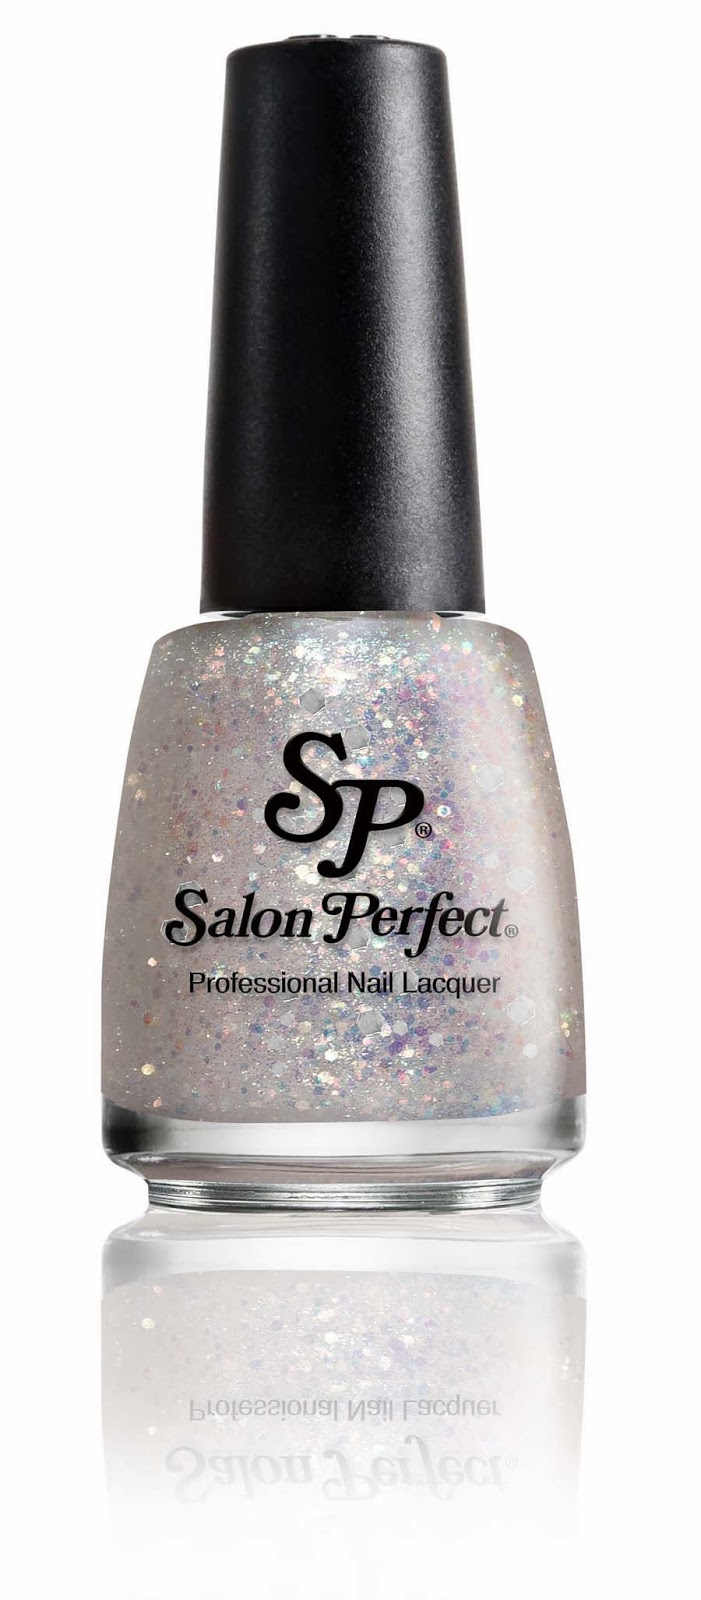 A Little Polish: PRESS RELEASE: Salon Perfect® Love, Lashes and Lacquer